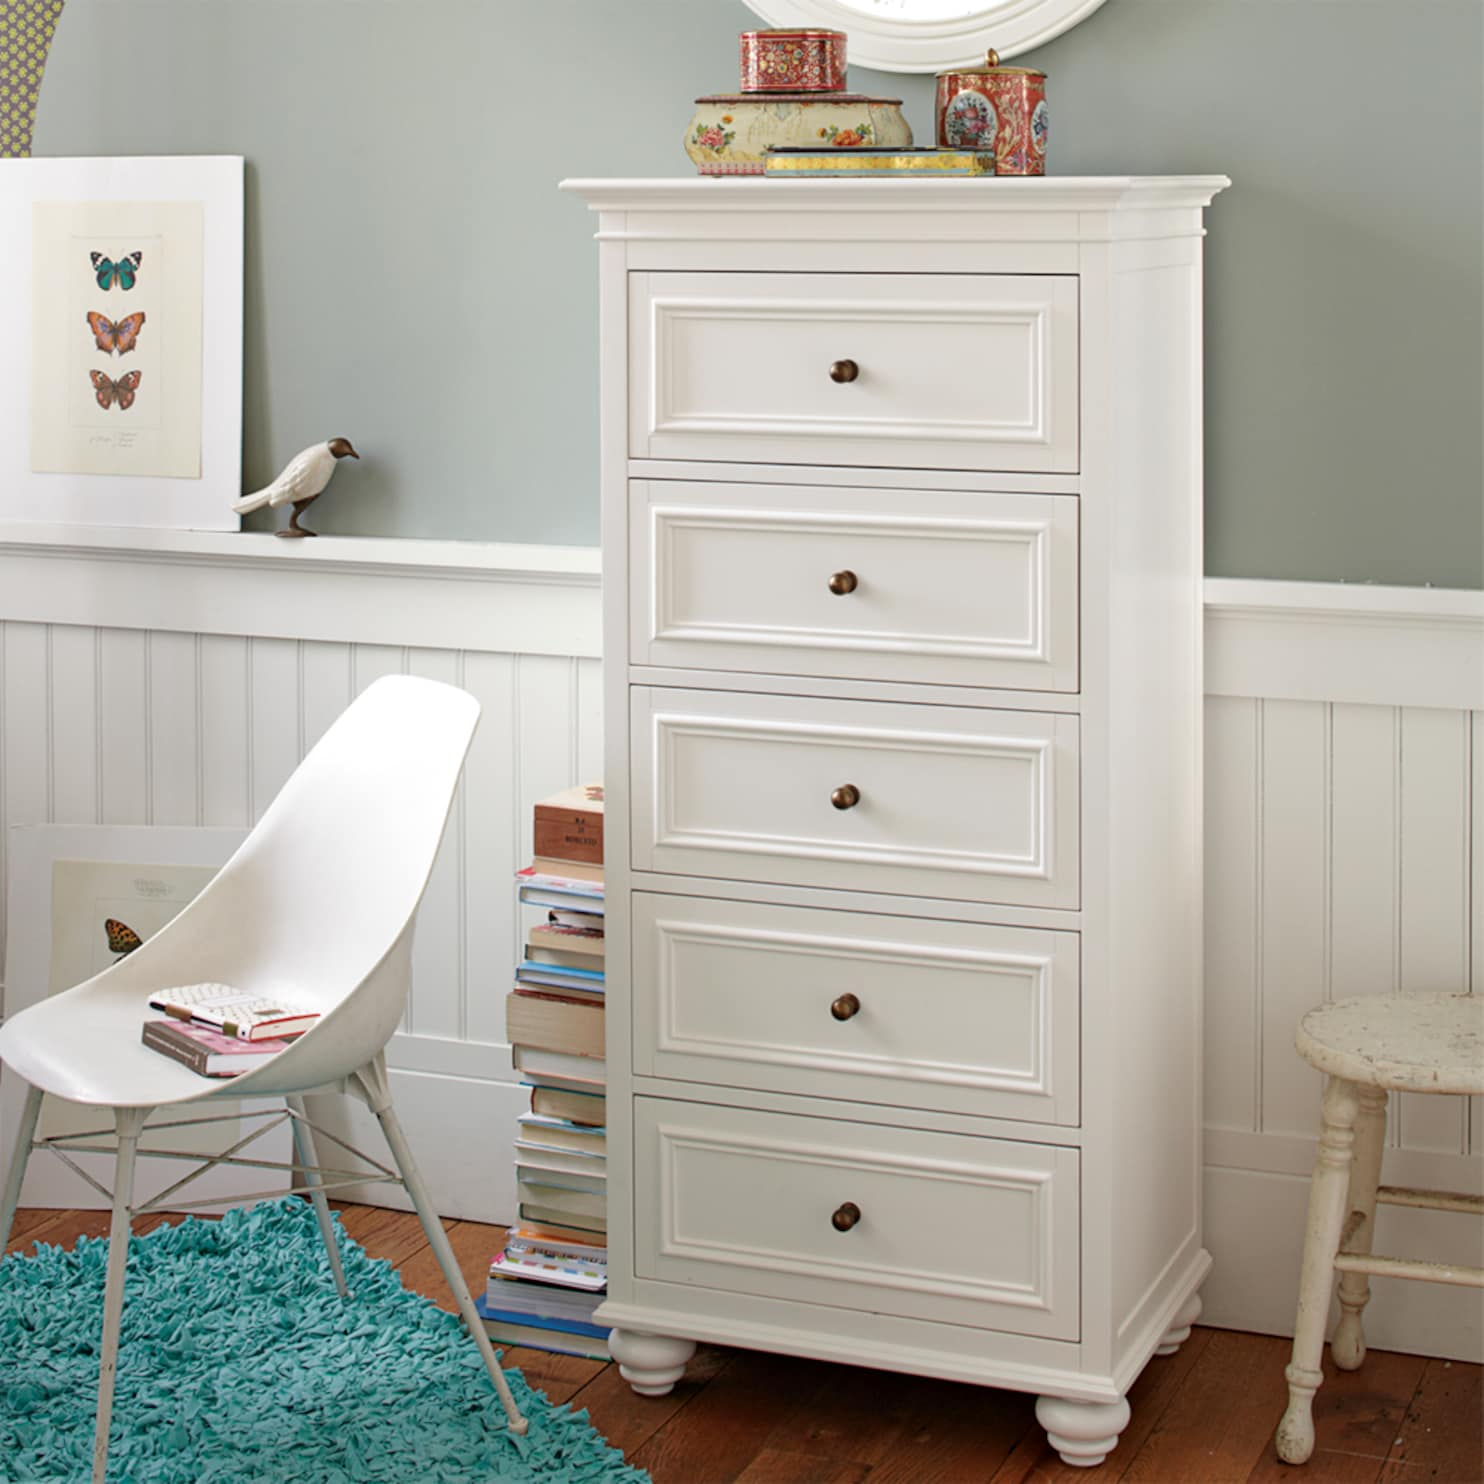 Creative dresser options for small spaces  The Washington Post